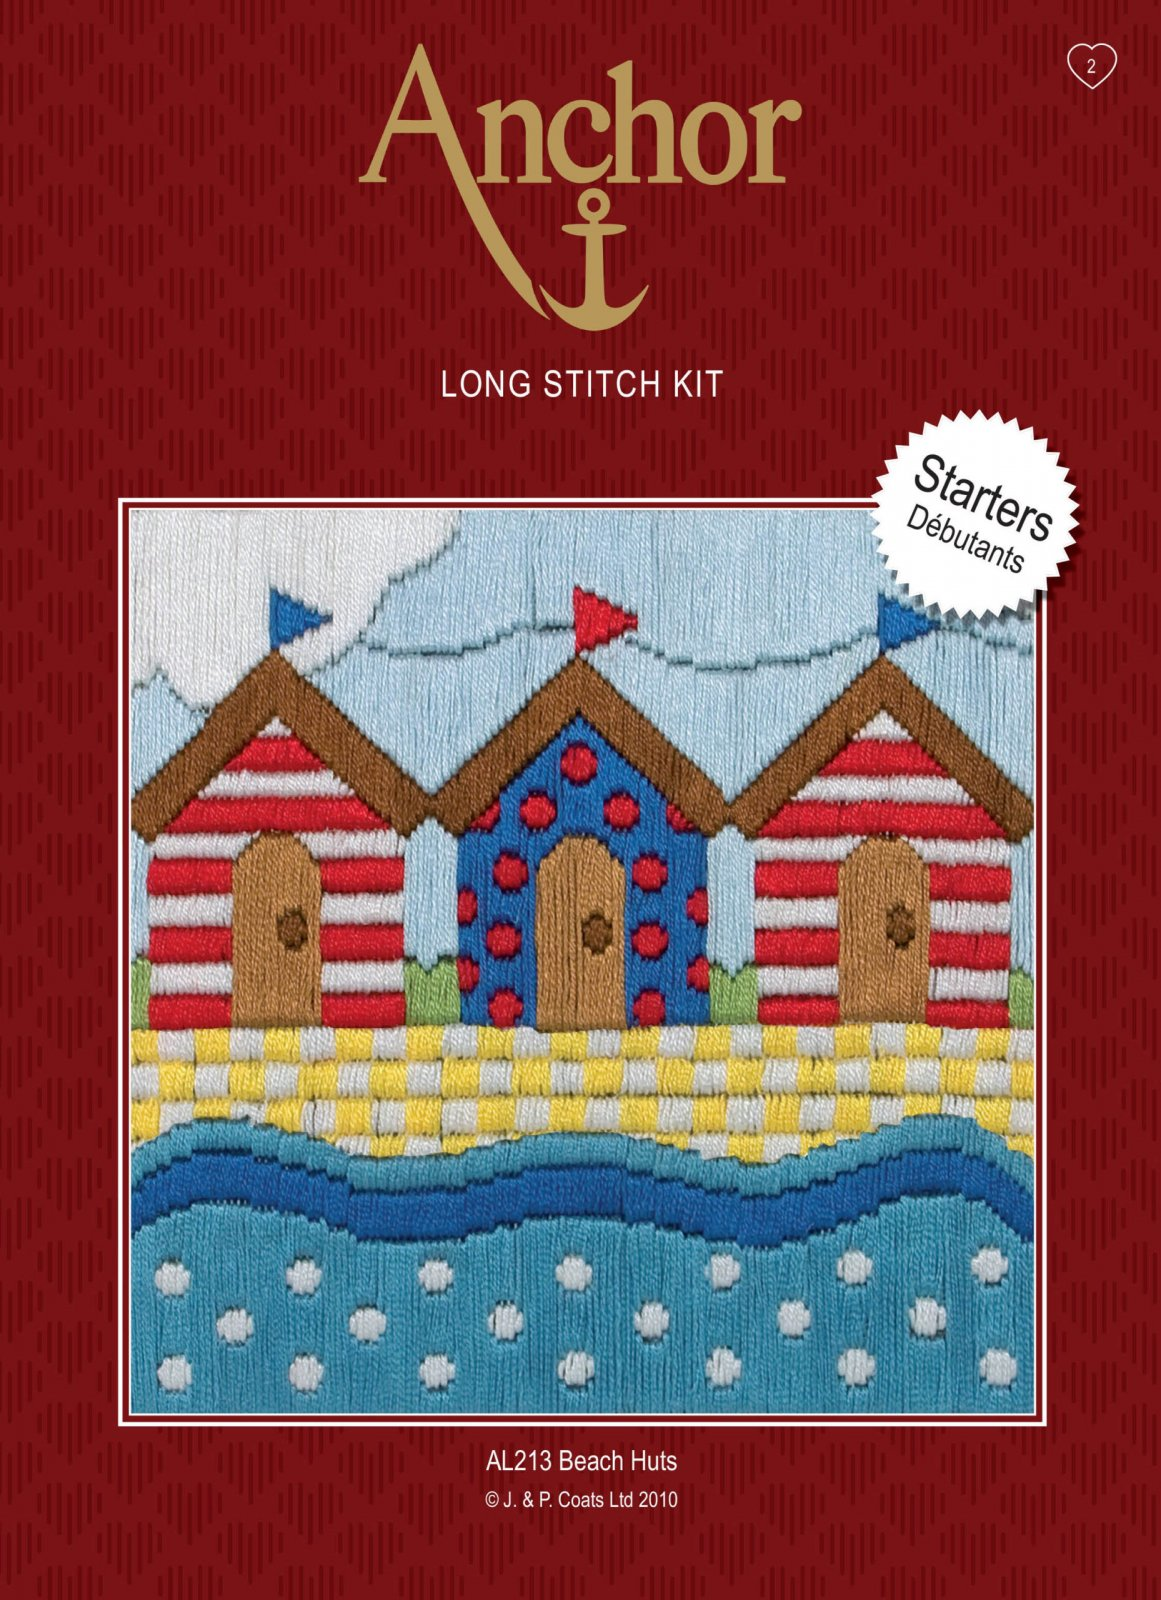 Beach Huts Long Stitch Kit